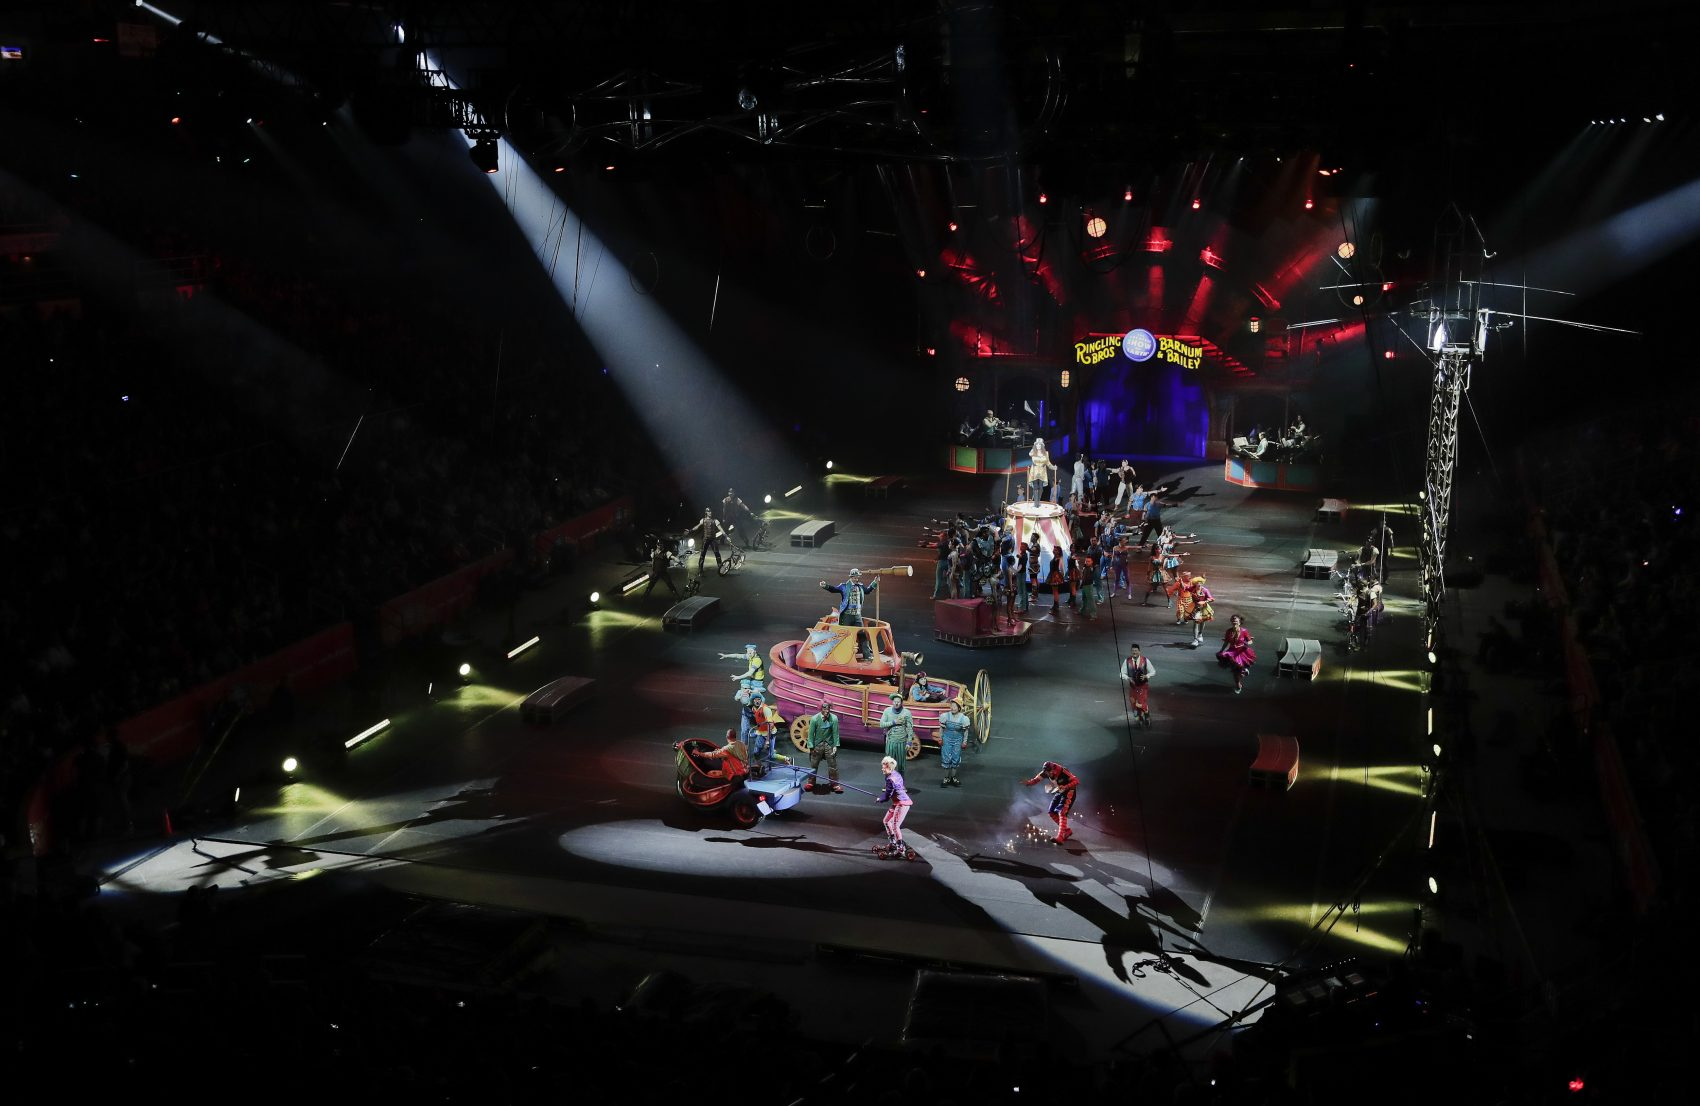 The red unit of Ringling Bros. and Barnum & Bailey circus opens a show on May 7 in Providence, R.I. (Julie Jacobson/AP)